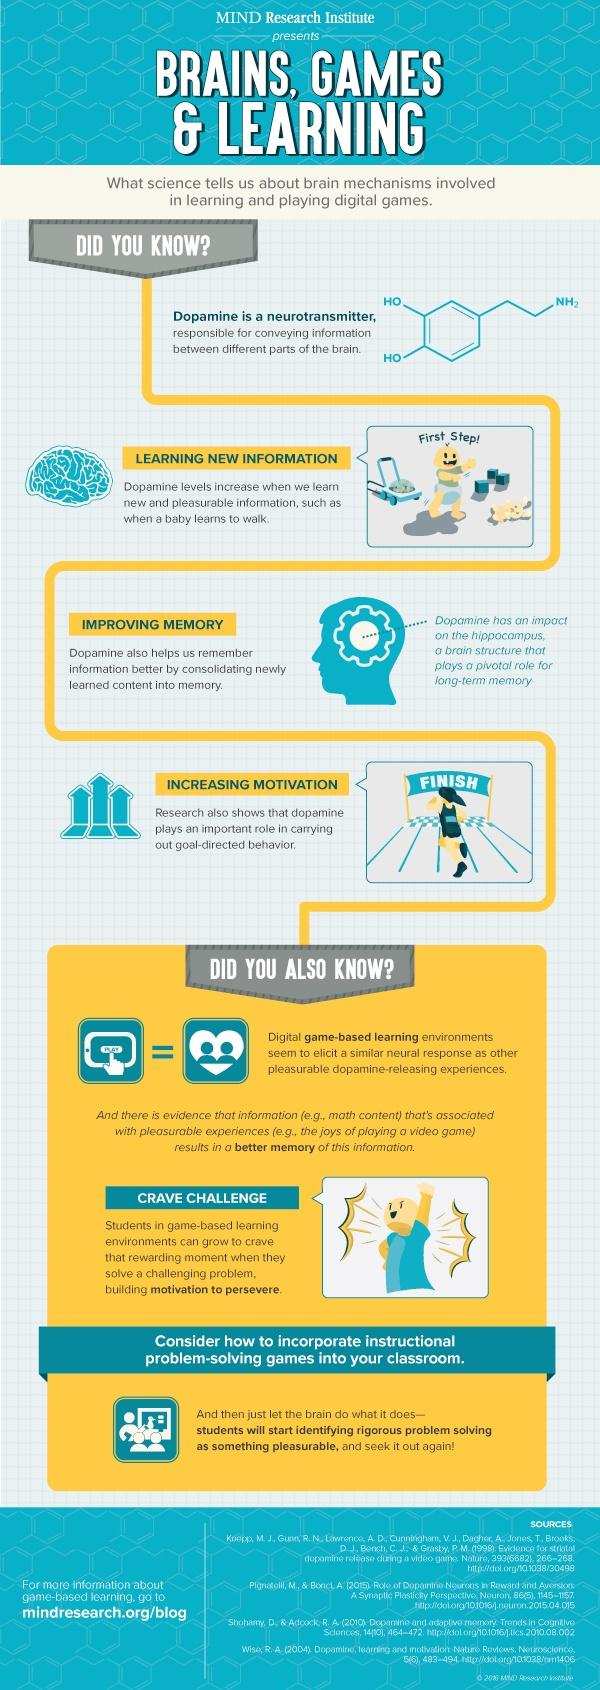 Dopamine_and_learning_infographic.jpg